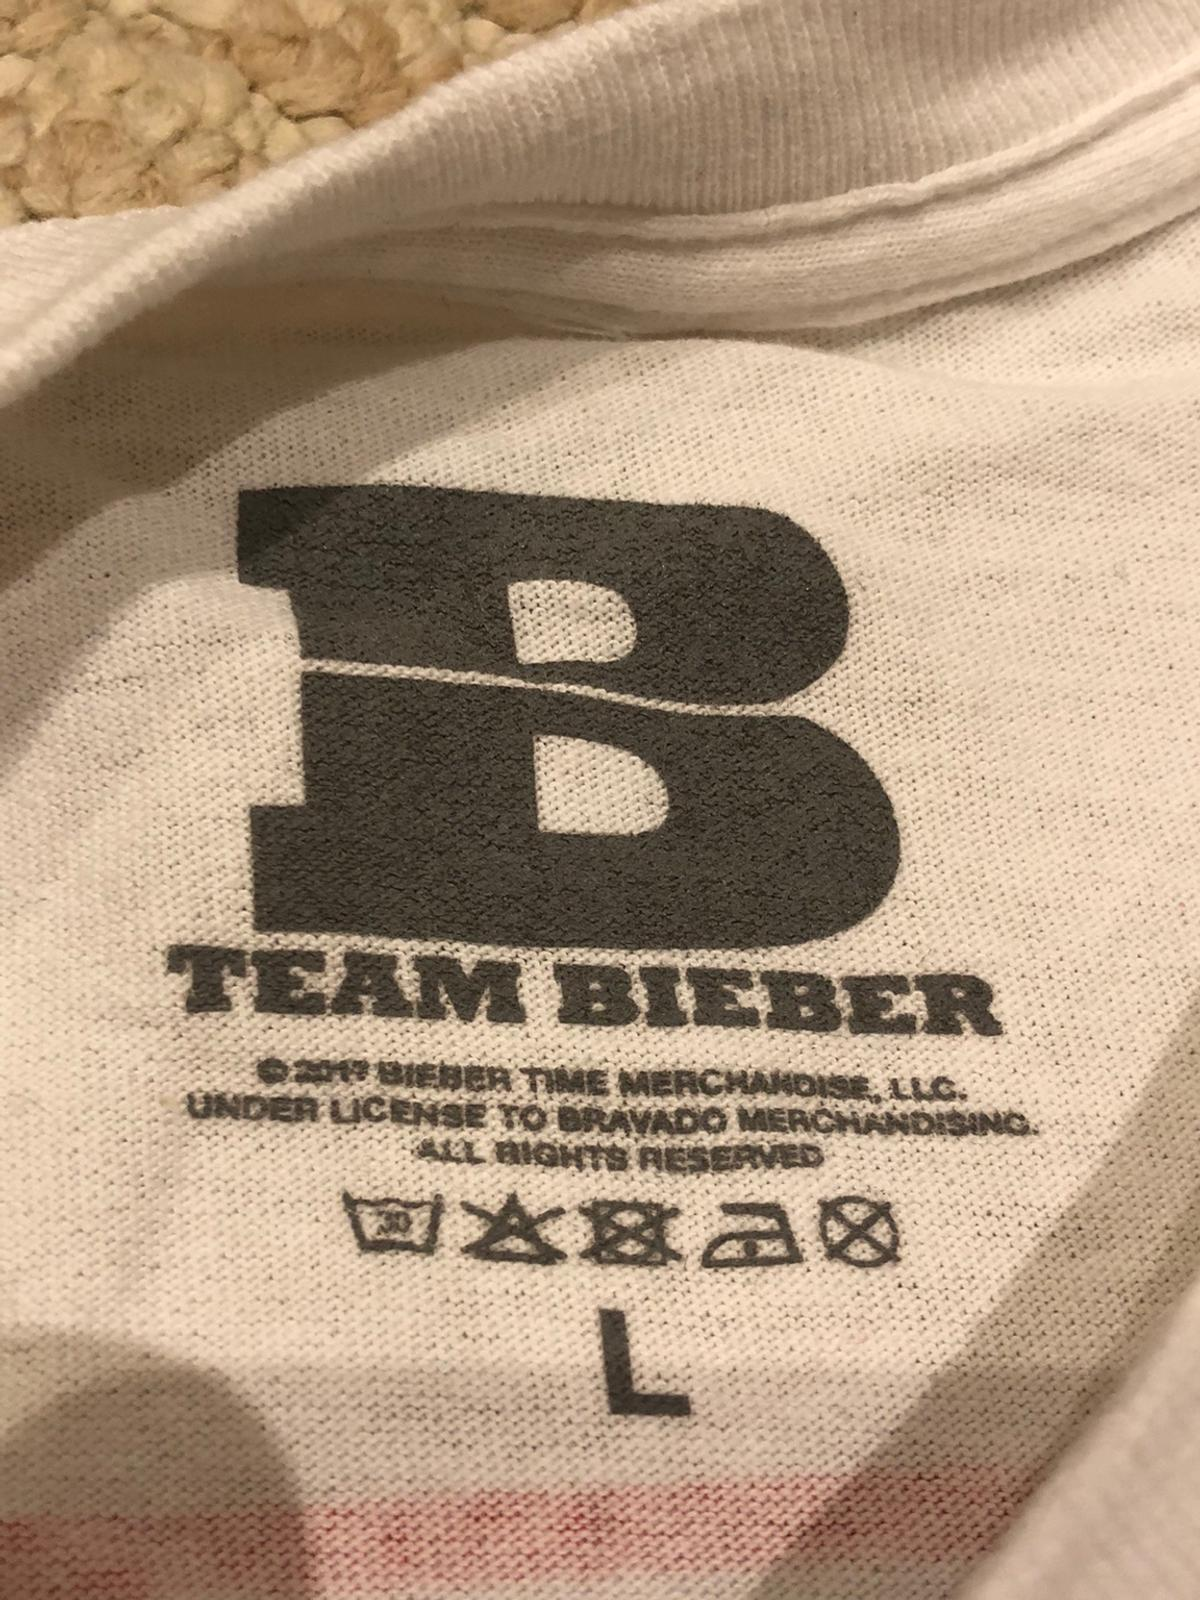 Real Justin Bieber 2017 stadium tour long sleeve shirt in large. Willing to negotiate.